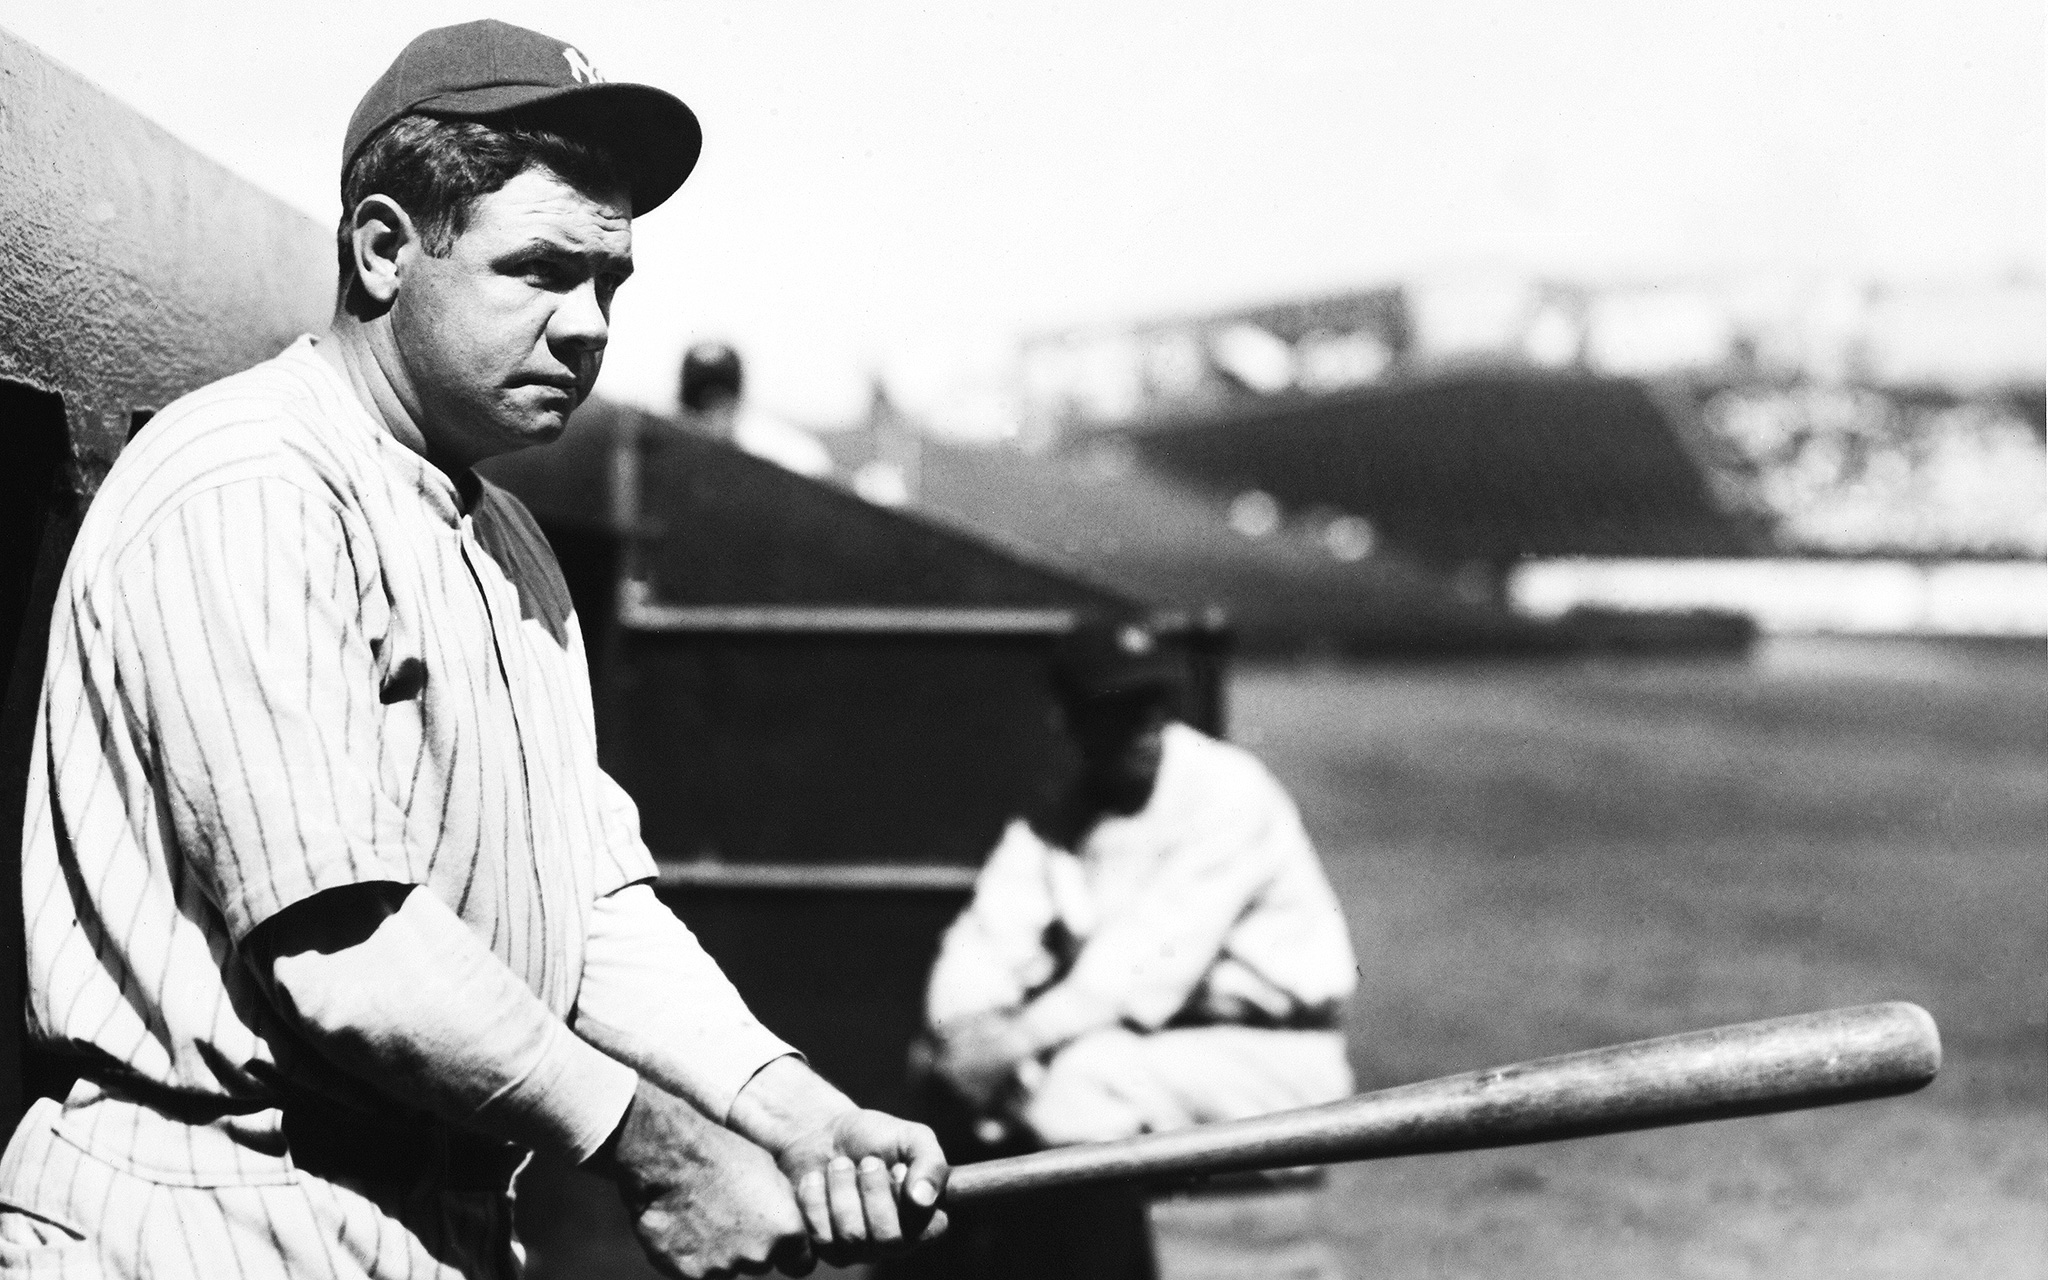 8. Babe Ruth, Yankees - 2 percent